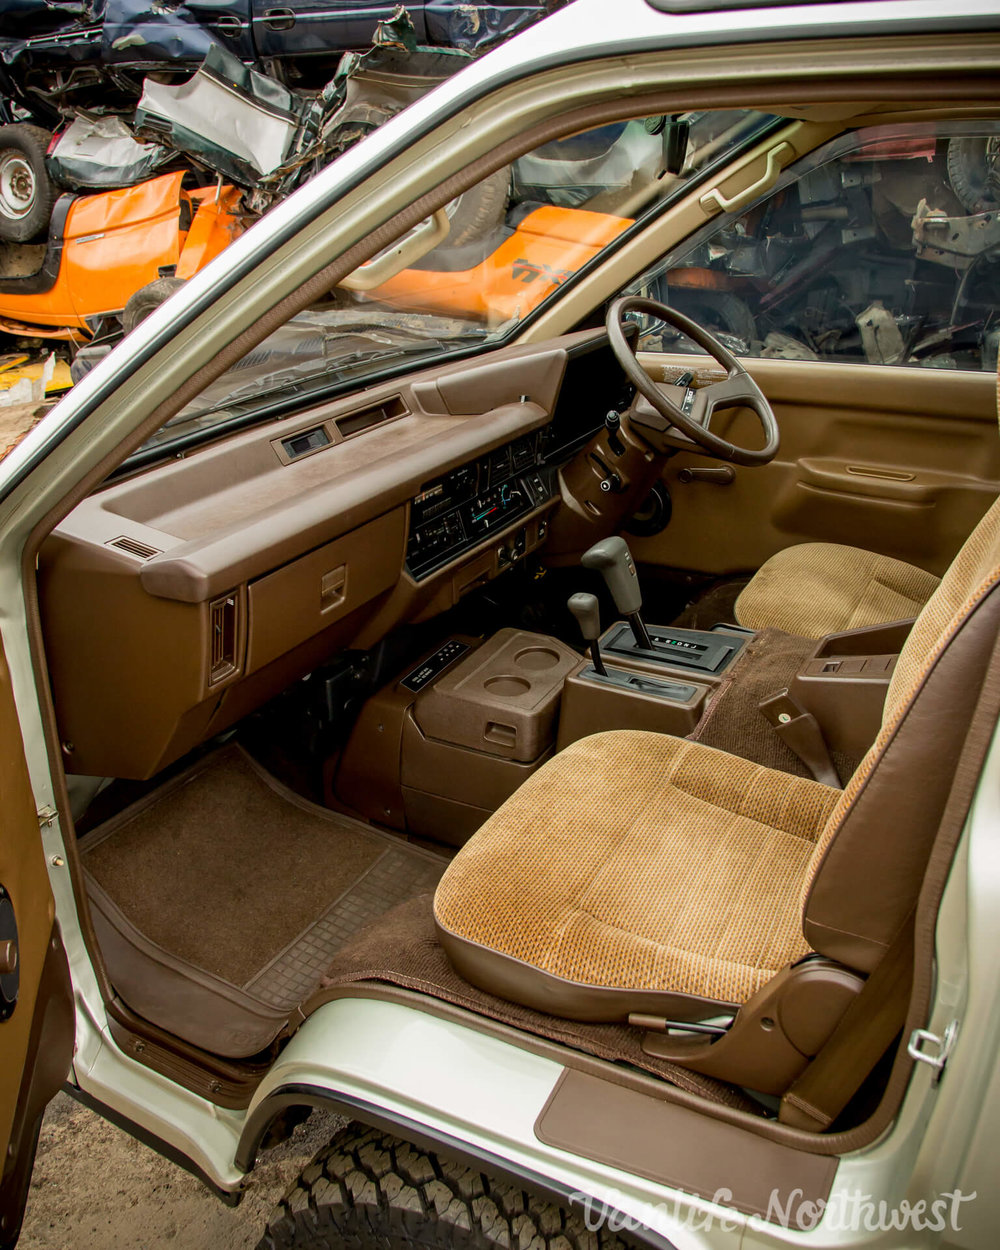 1987ToyotaLiteAce4wdGasolineSkylight-27.jpg